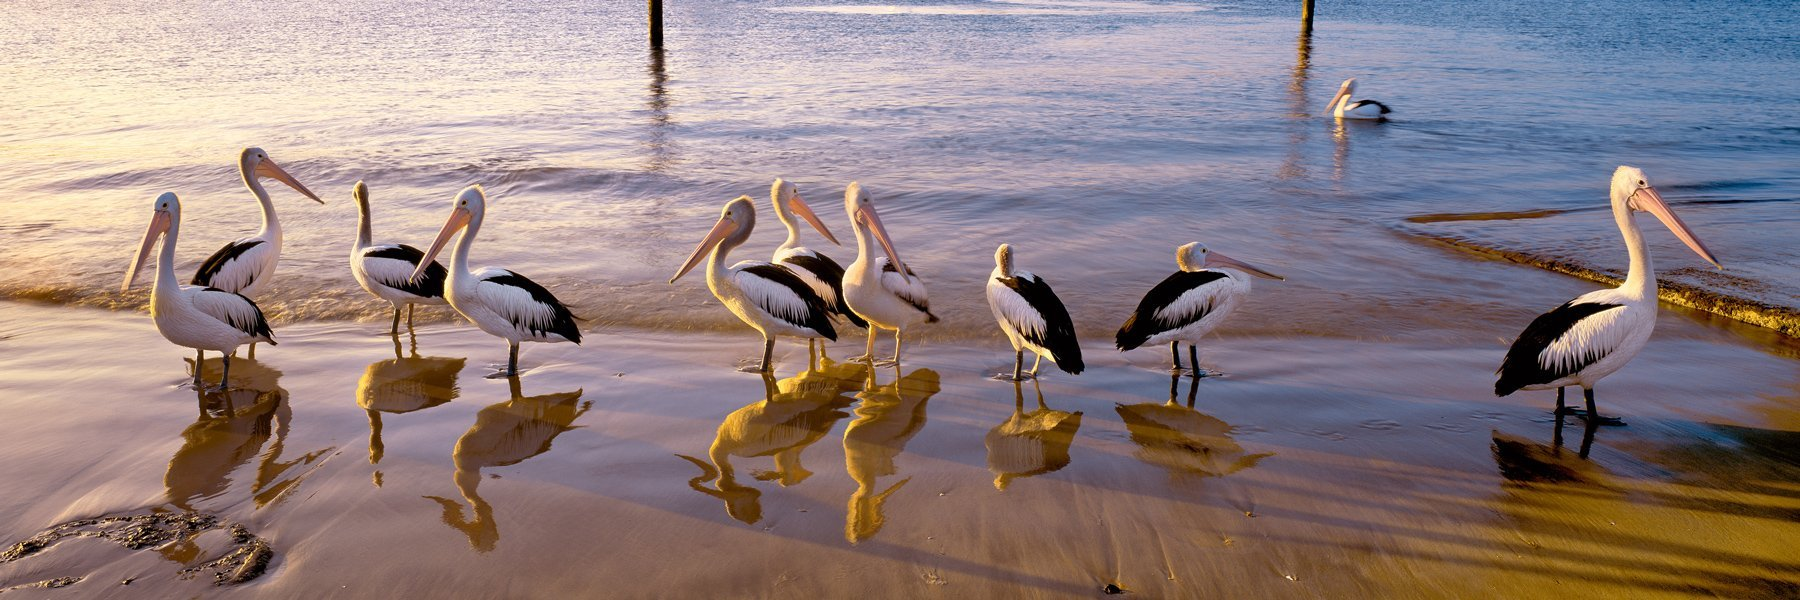 Pelicans waiting for a feed, Terrigal, Central Coast, NSW, Australia.